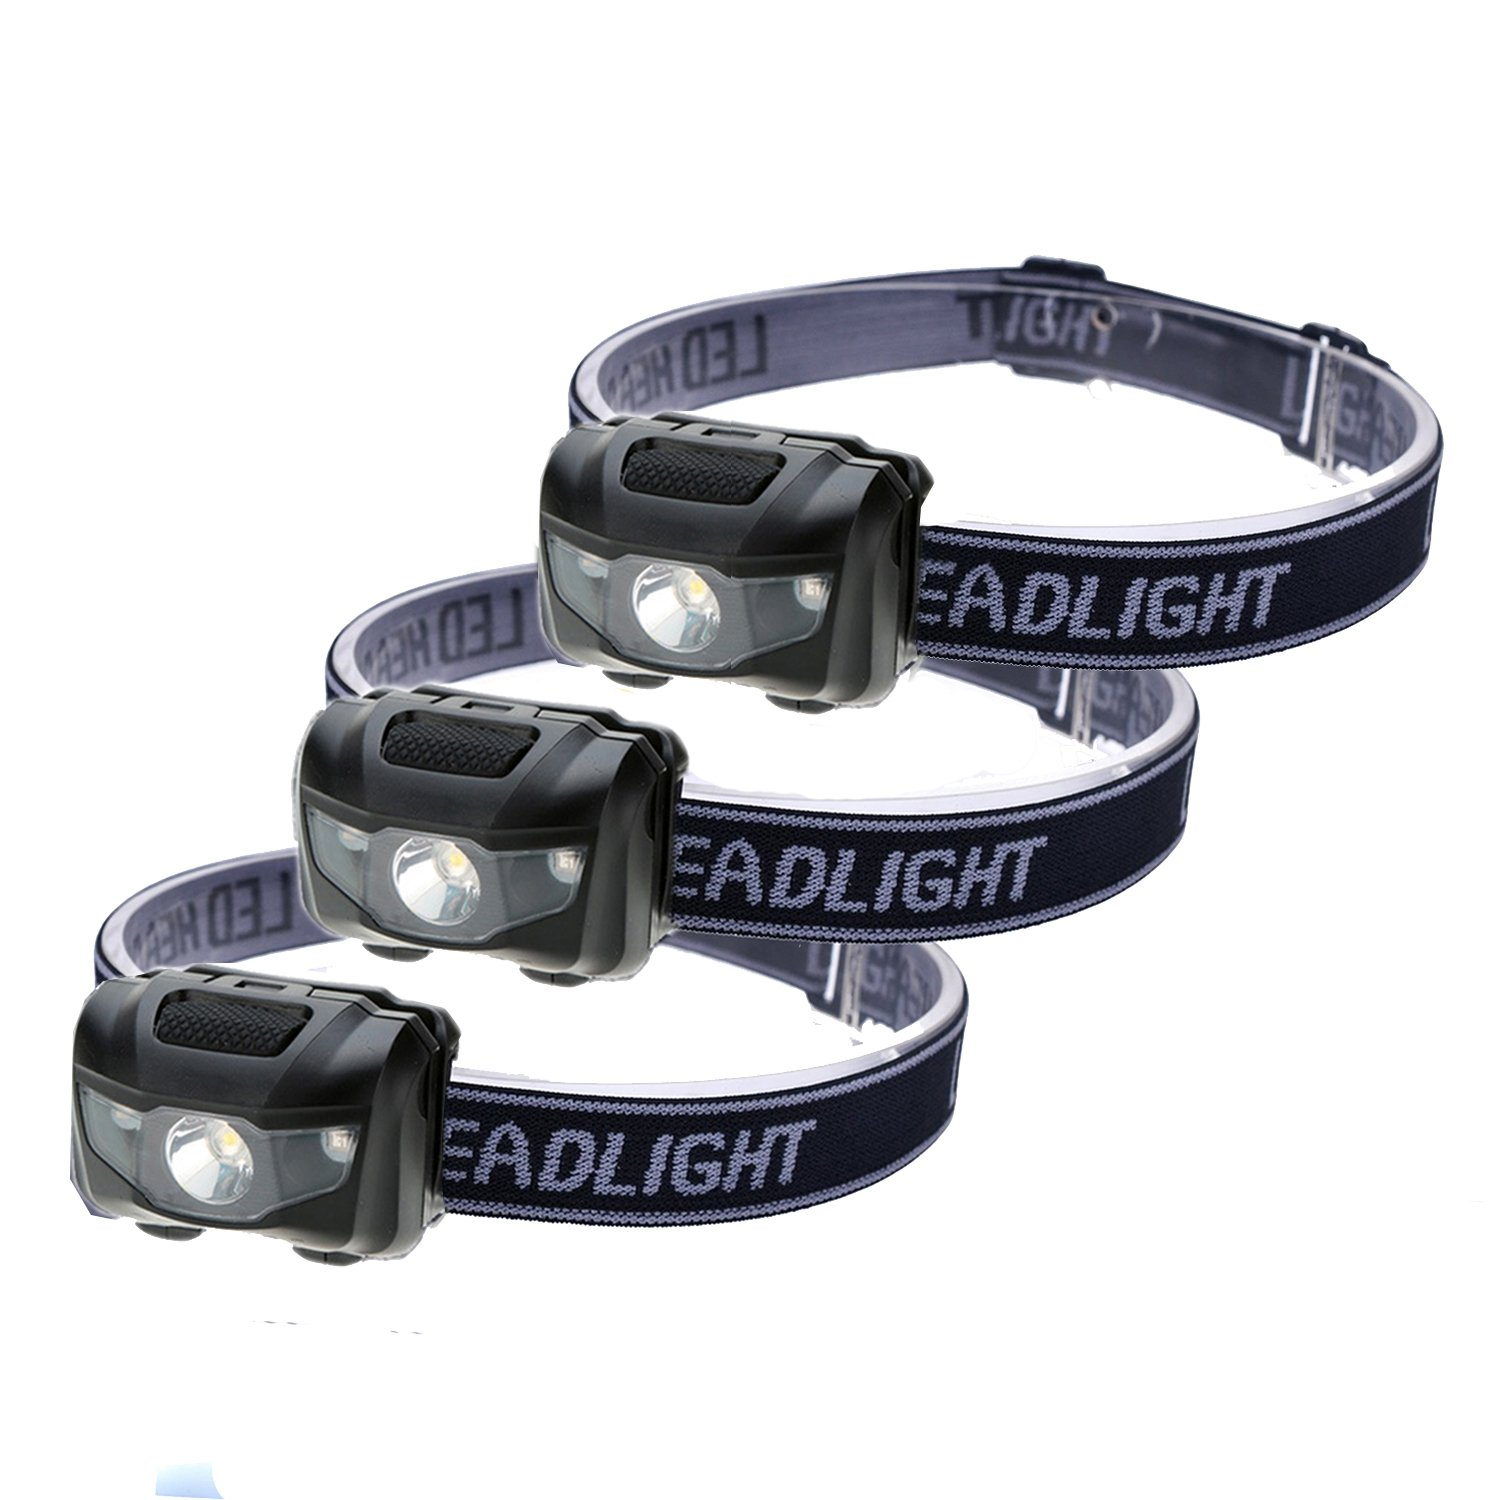 3-Pack Waterproof LED Headlamp (White and Red Lights), 4 Light Modes Lightweight Headlight for Running, Hiking, Hunting, Fishing, Camping by HappyOrange (Image #1)